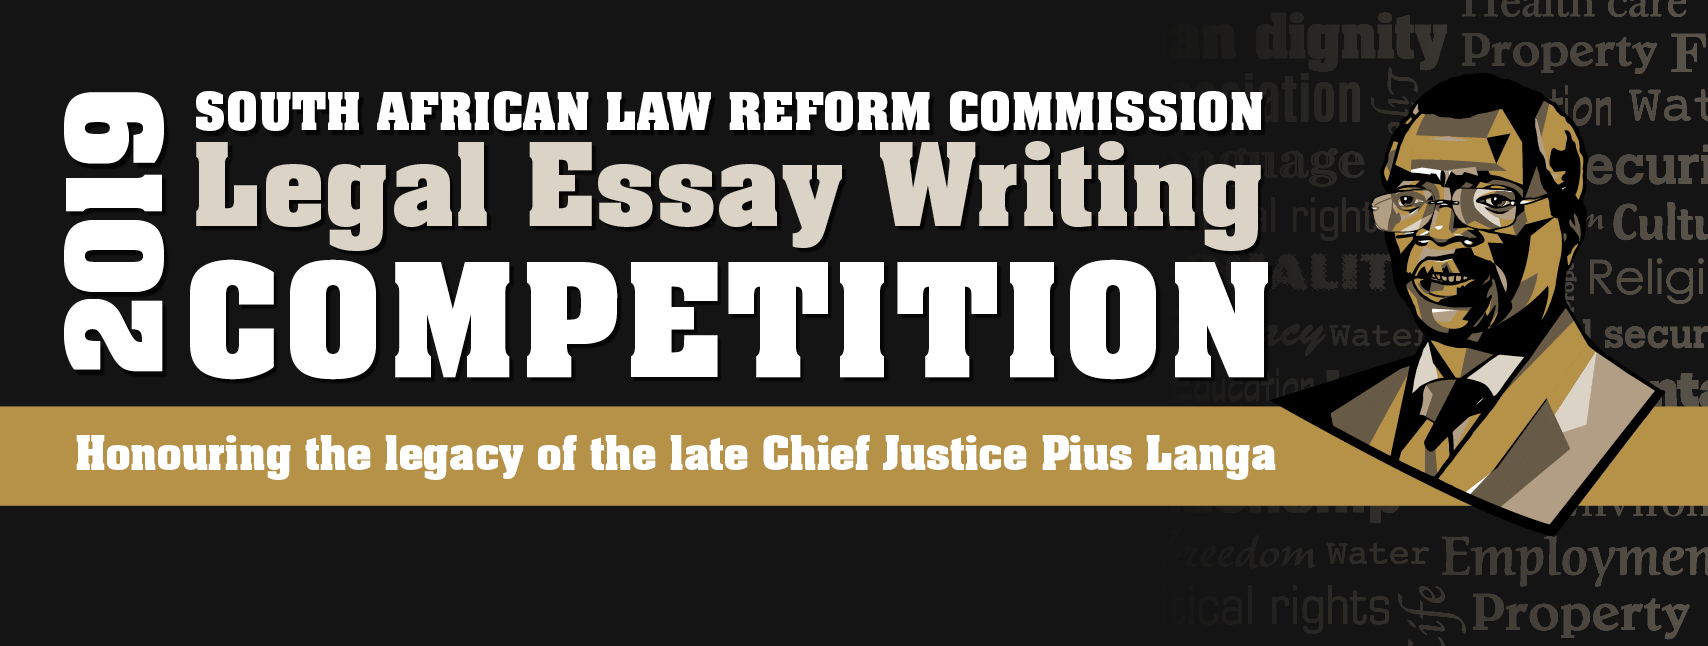 South African Law Reform Commission Legal Essay Writing Competition 2019 (R70,000 prize)